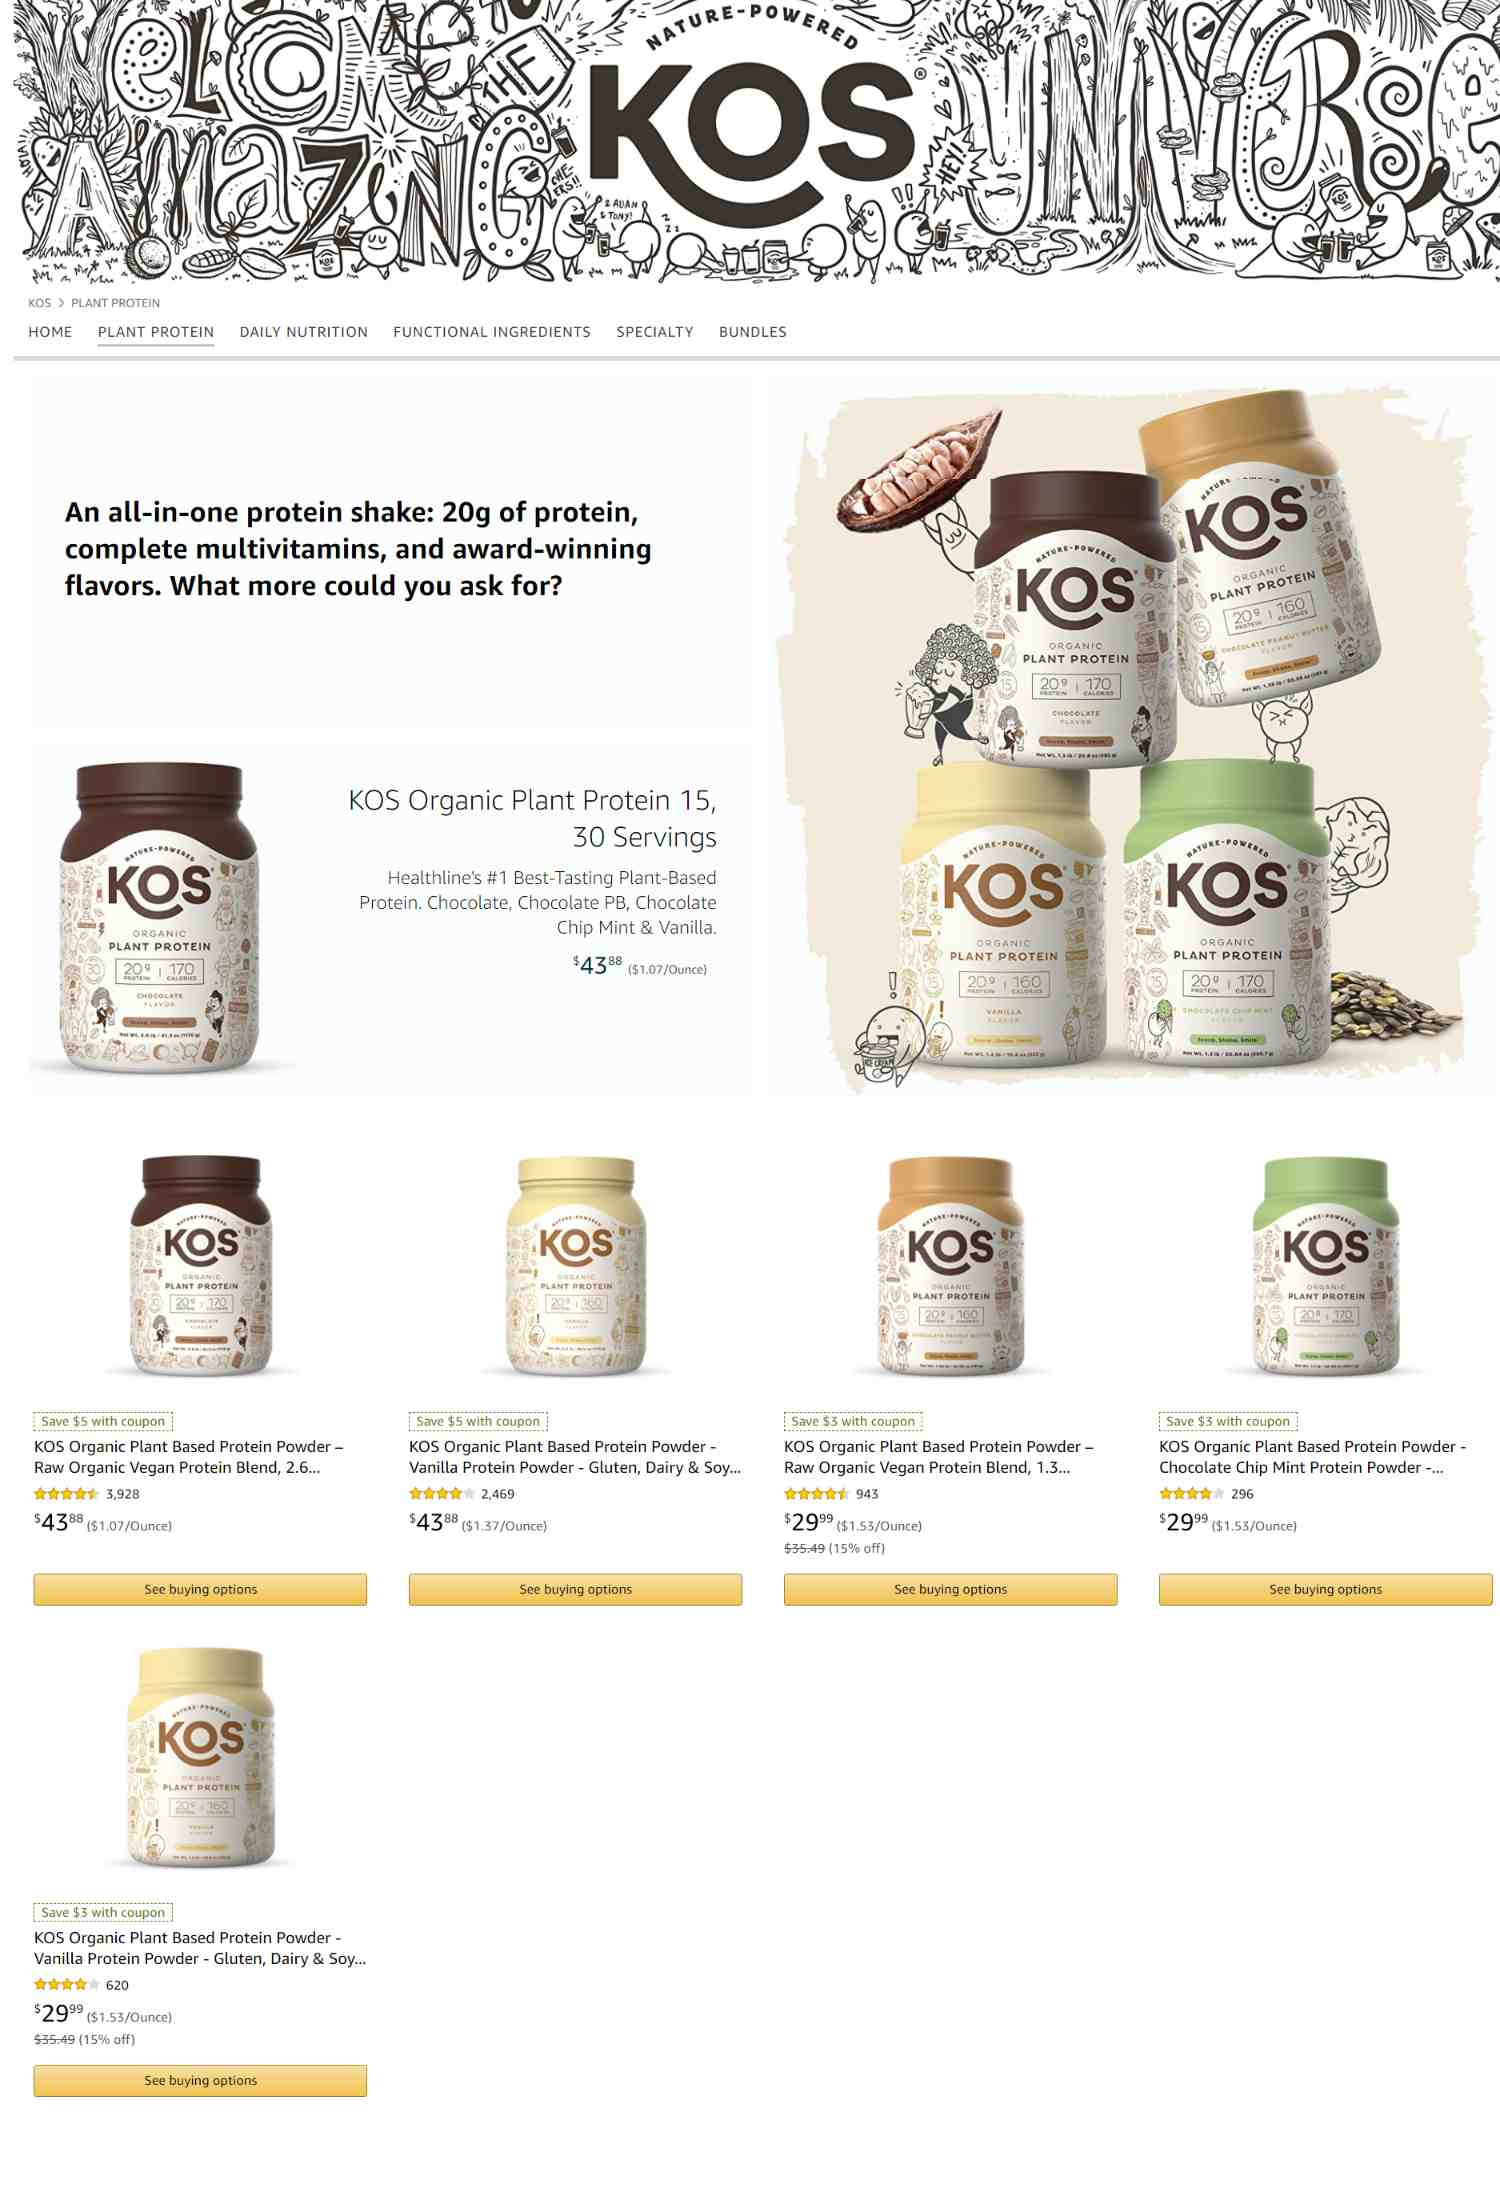 Amazon Storefront Example of Kos's Plant Protein Product Page